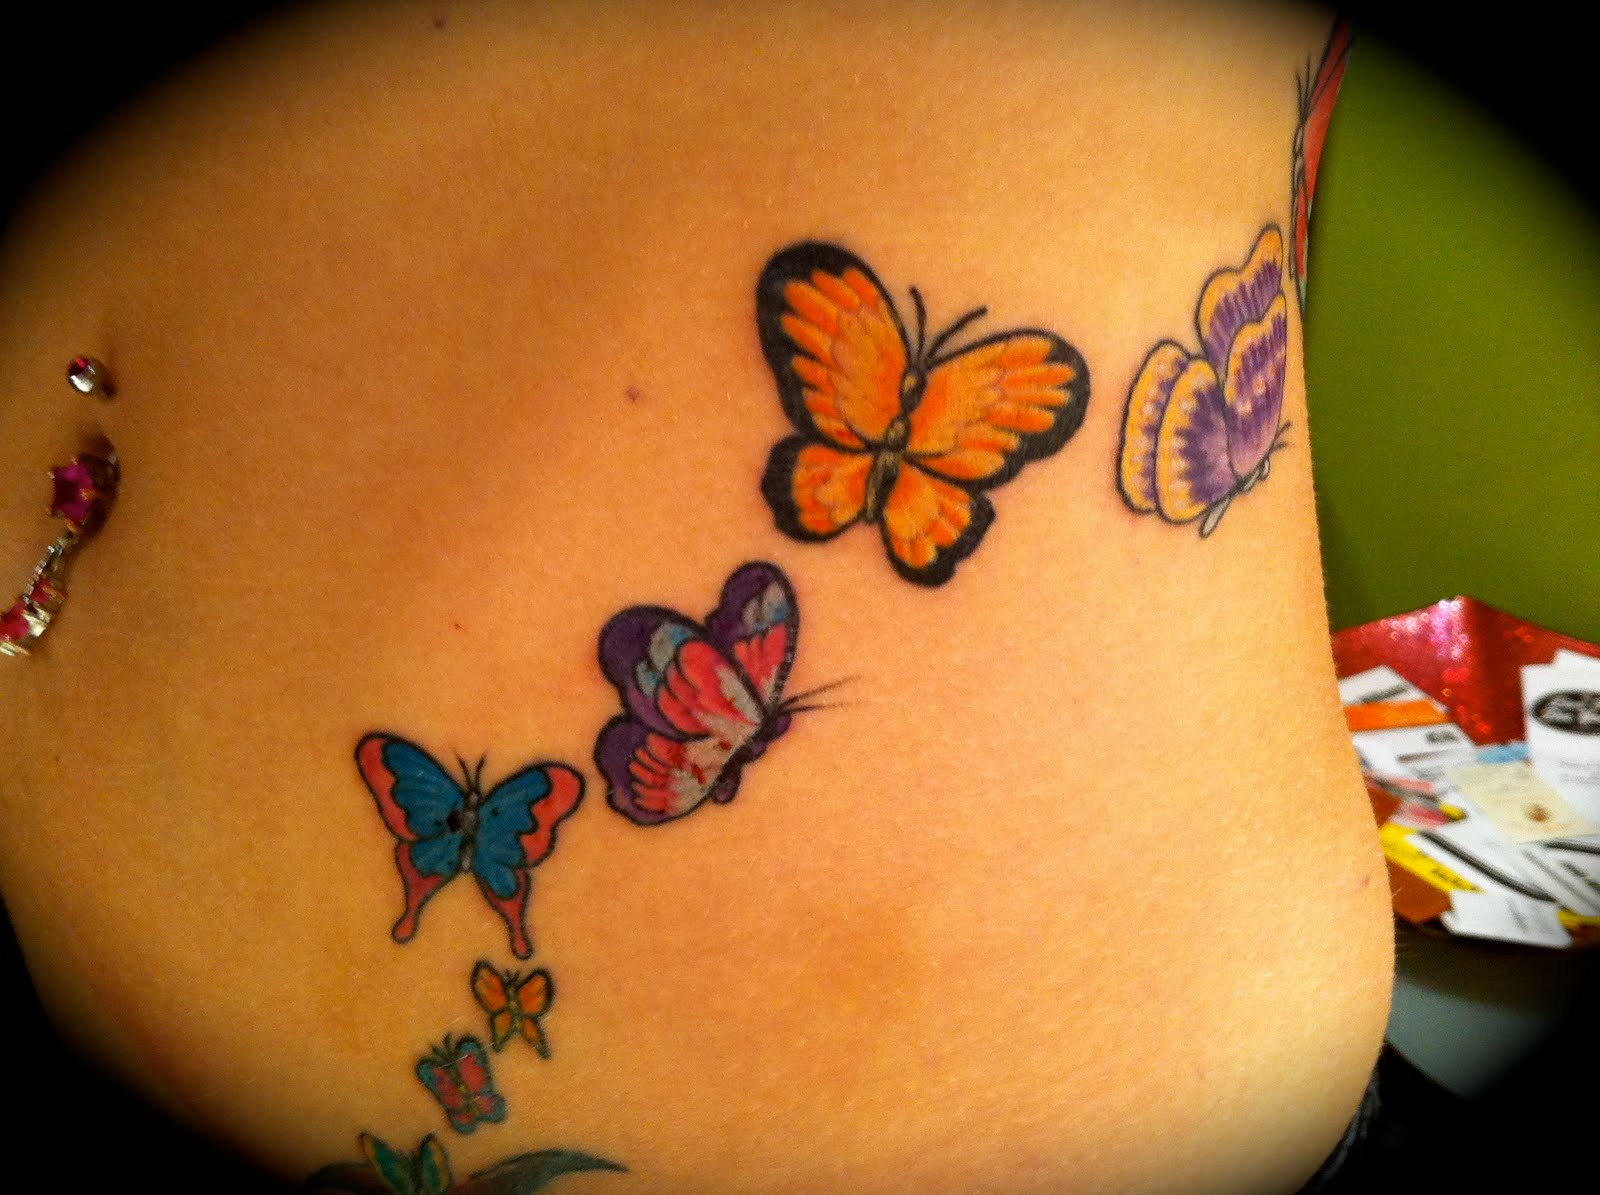 Miss Kitty...Tattoos, Art and Happenings: Butterflies